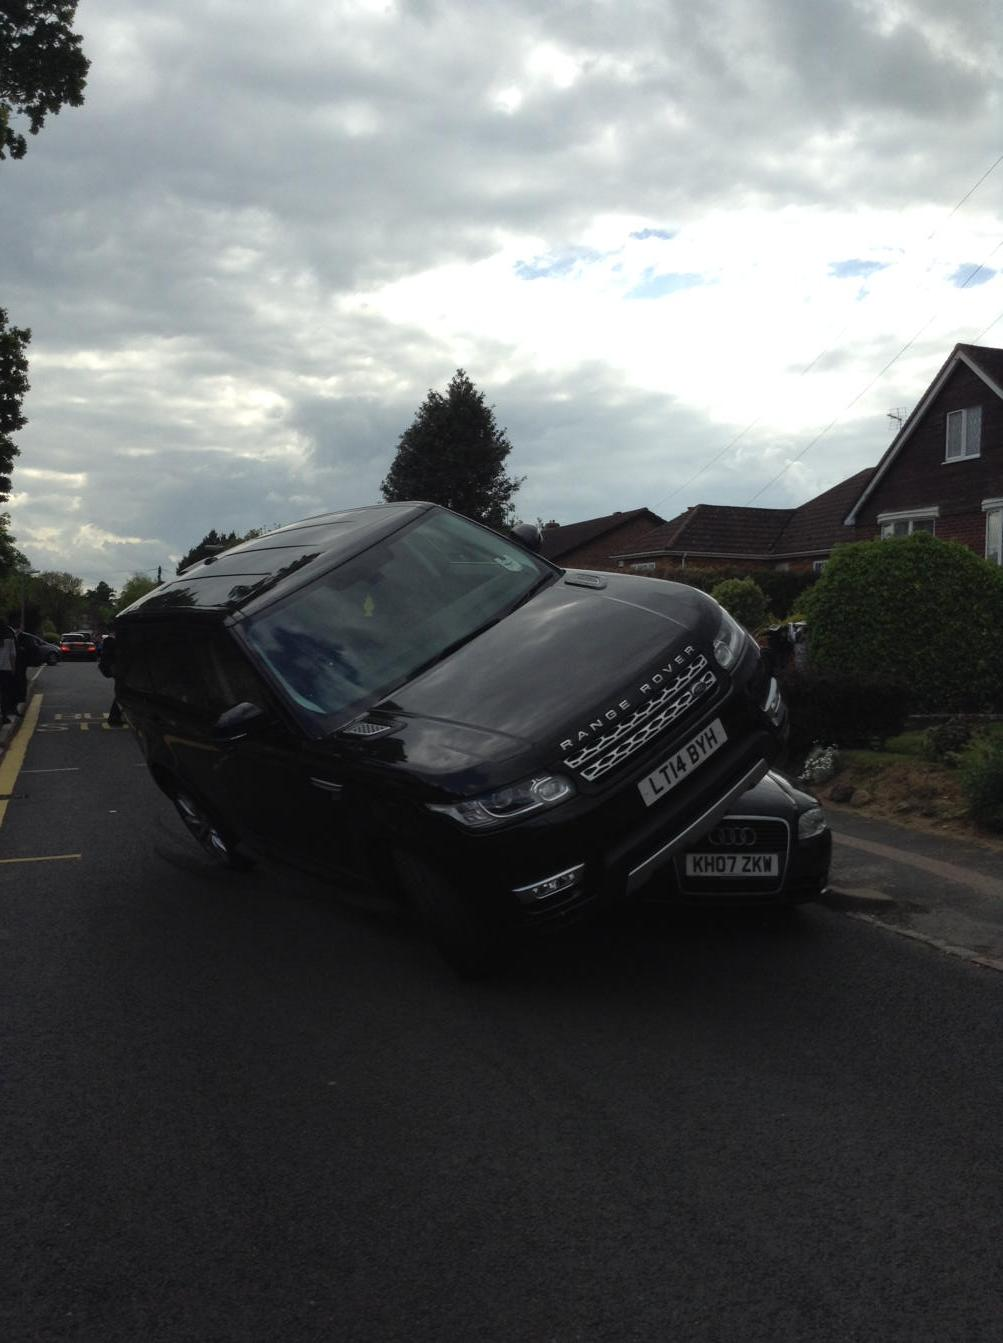 Parked my car in a quiet village. Then this.Felt so sick and shaken by the fact someone can drive so dangerously. http://t.co/bem4KHMwUx